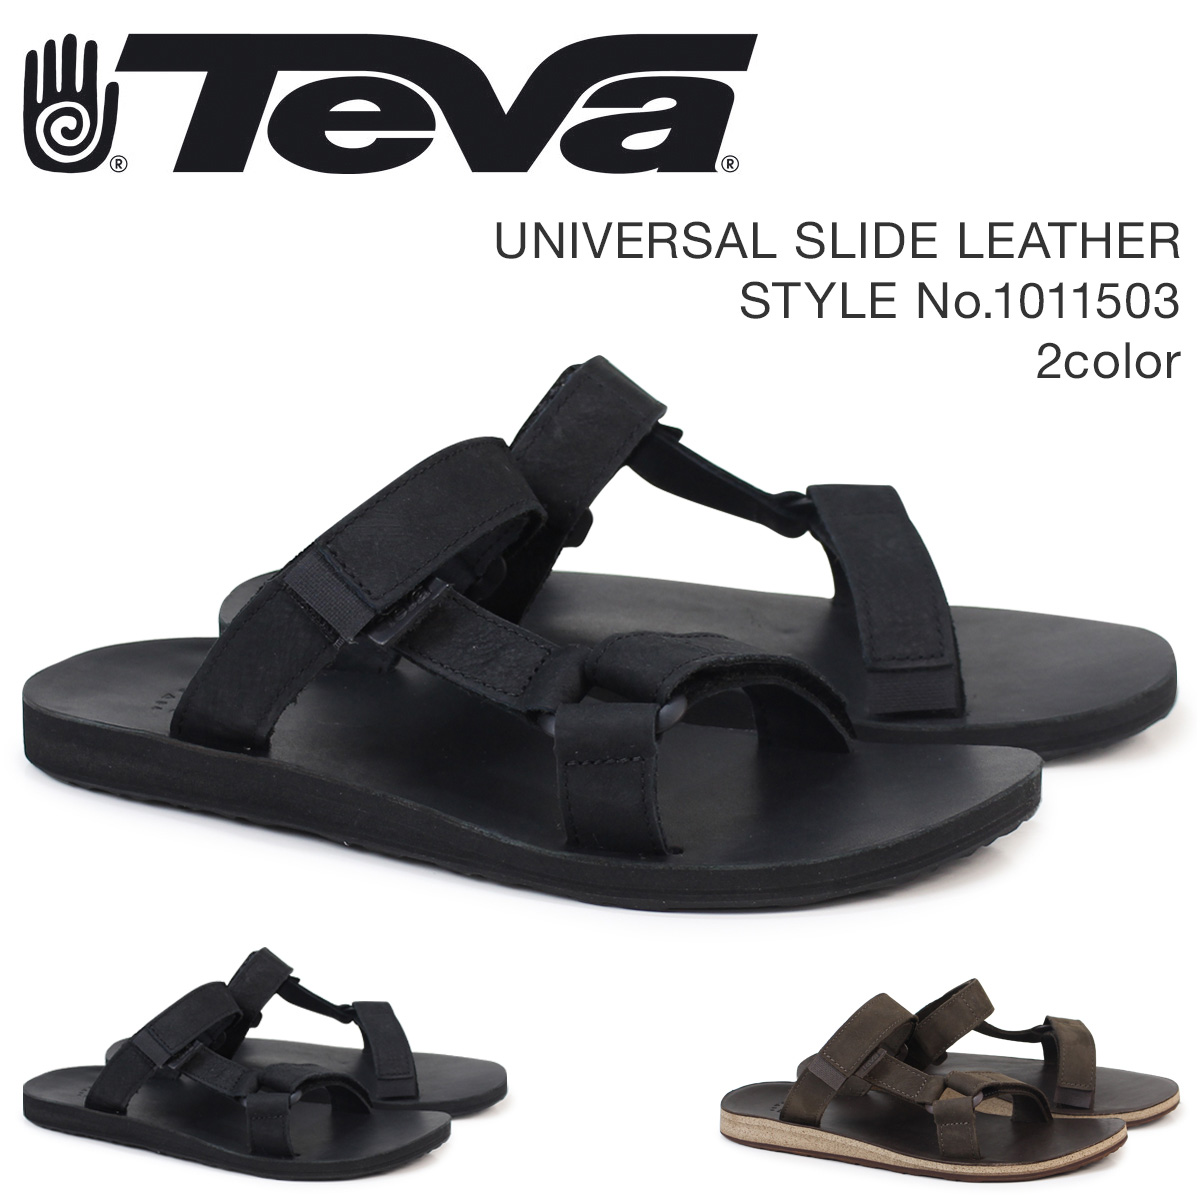 d27d0a5ad Because I developed sports sandals with a strap for the first time in the  world